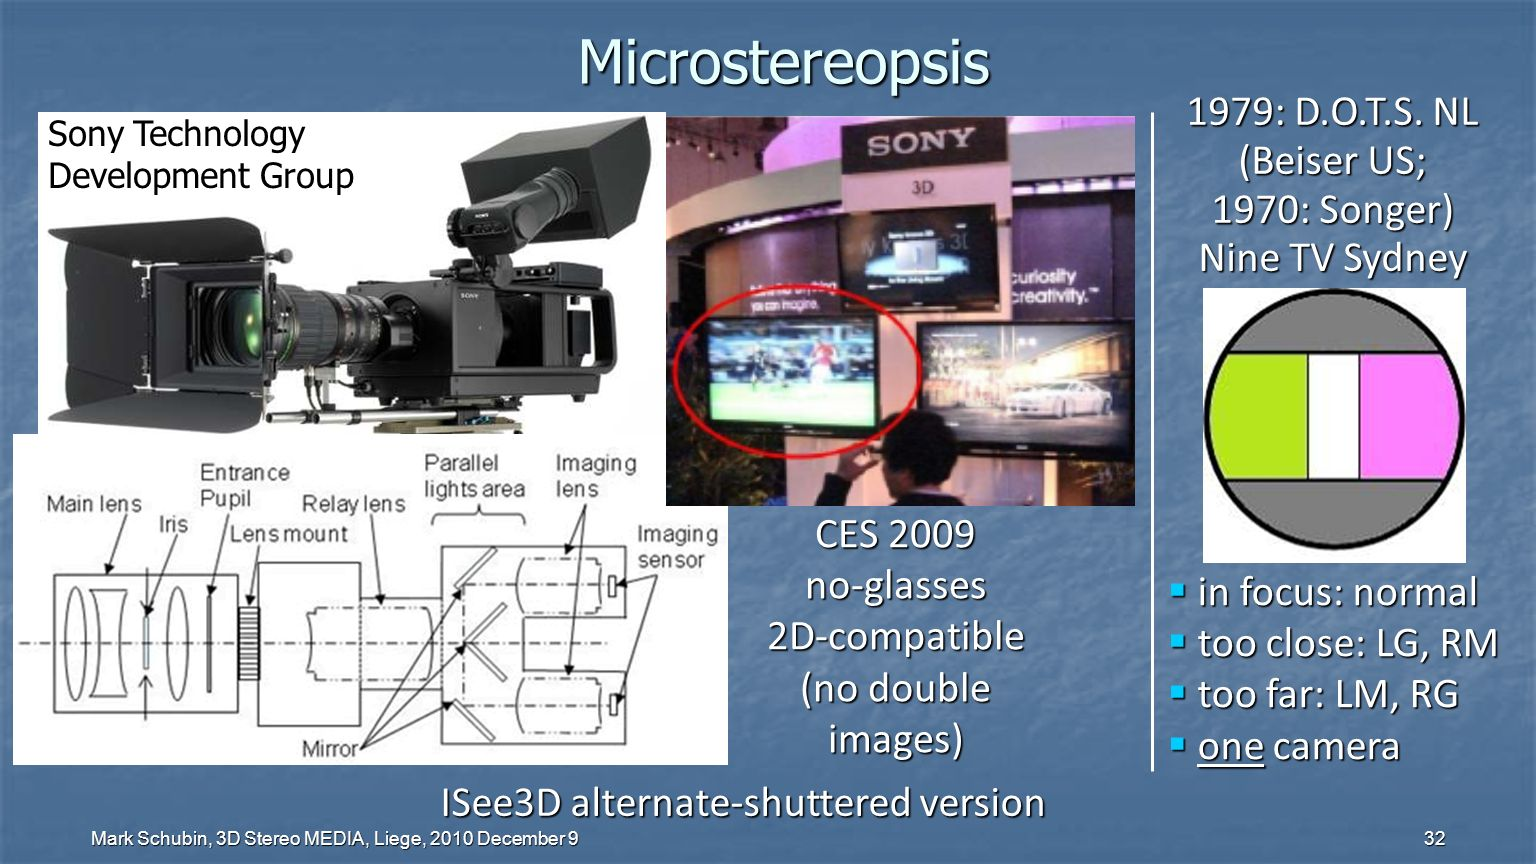 Mark Schubin, 3D Stereo MEDIA, Liege, 2010 December 9 31 Microstereopsis Term coined by Mel Siegel, Robotics Institute, Carnegie Mellon University, and co-authors of papers Kinder Gentler Stereo, and Just Enough Reality: Comfortable 3D Viewing via Microstereopsis Term coined by Mel Siegel, Robotics Institute, Carnegie Mellon University, and co-authors of papers Kinder Gentler Stereo, and Just Enough Reality: Comfortable 3D Viewing via Microstereopsis (Proc.